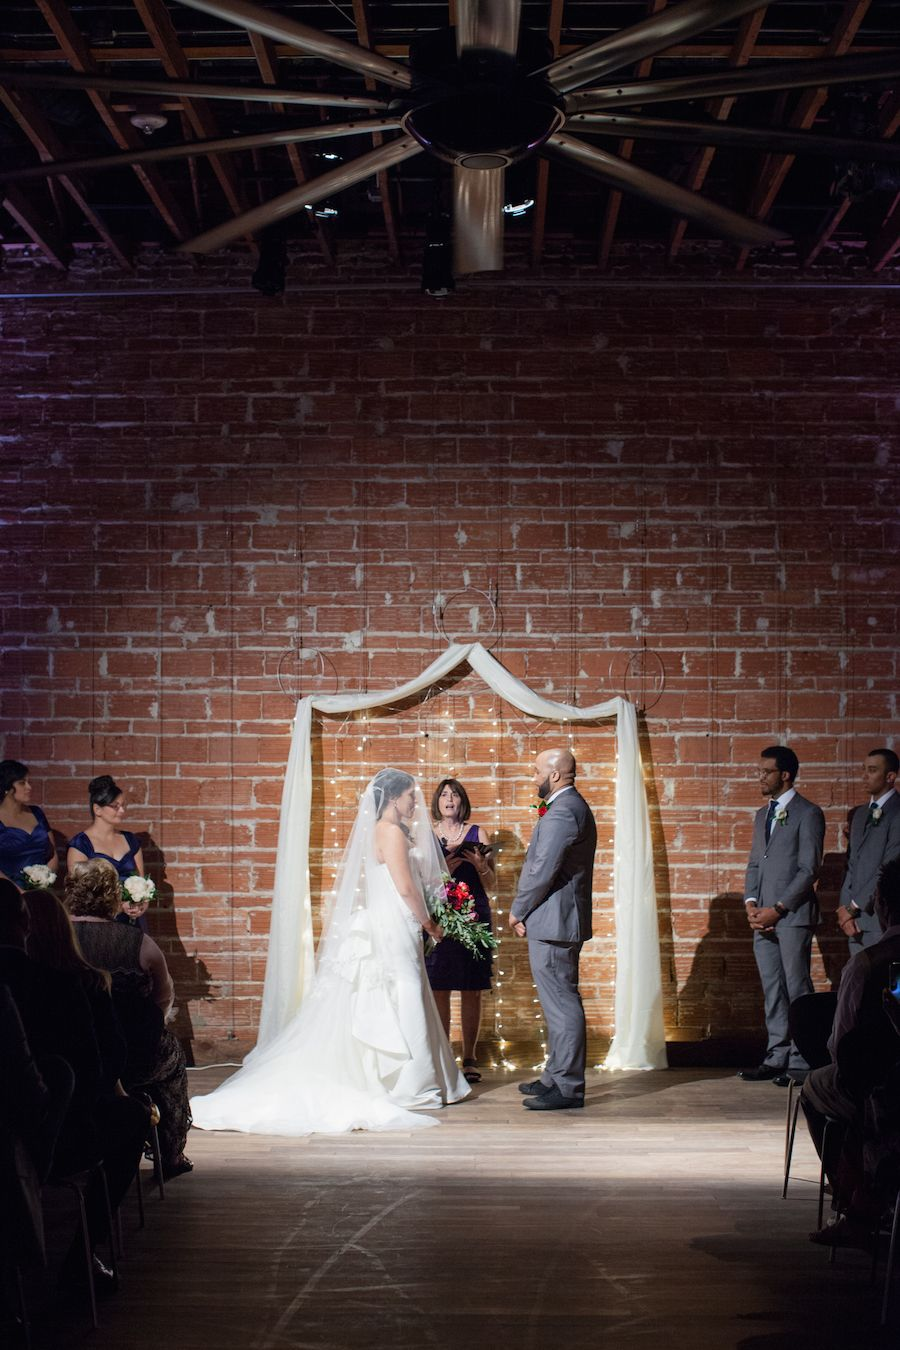 Bride and Groom Wedding Ceremony Portrait with Exposed Brick Wall Backdrop at Modern, Downtown St. Pete Wedding Venue NOVA 535 for a romantic st. petersburg wedding